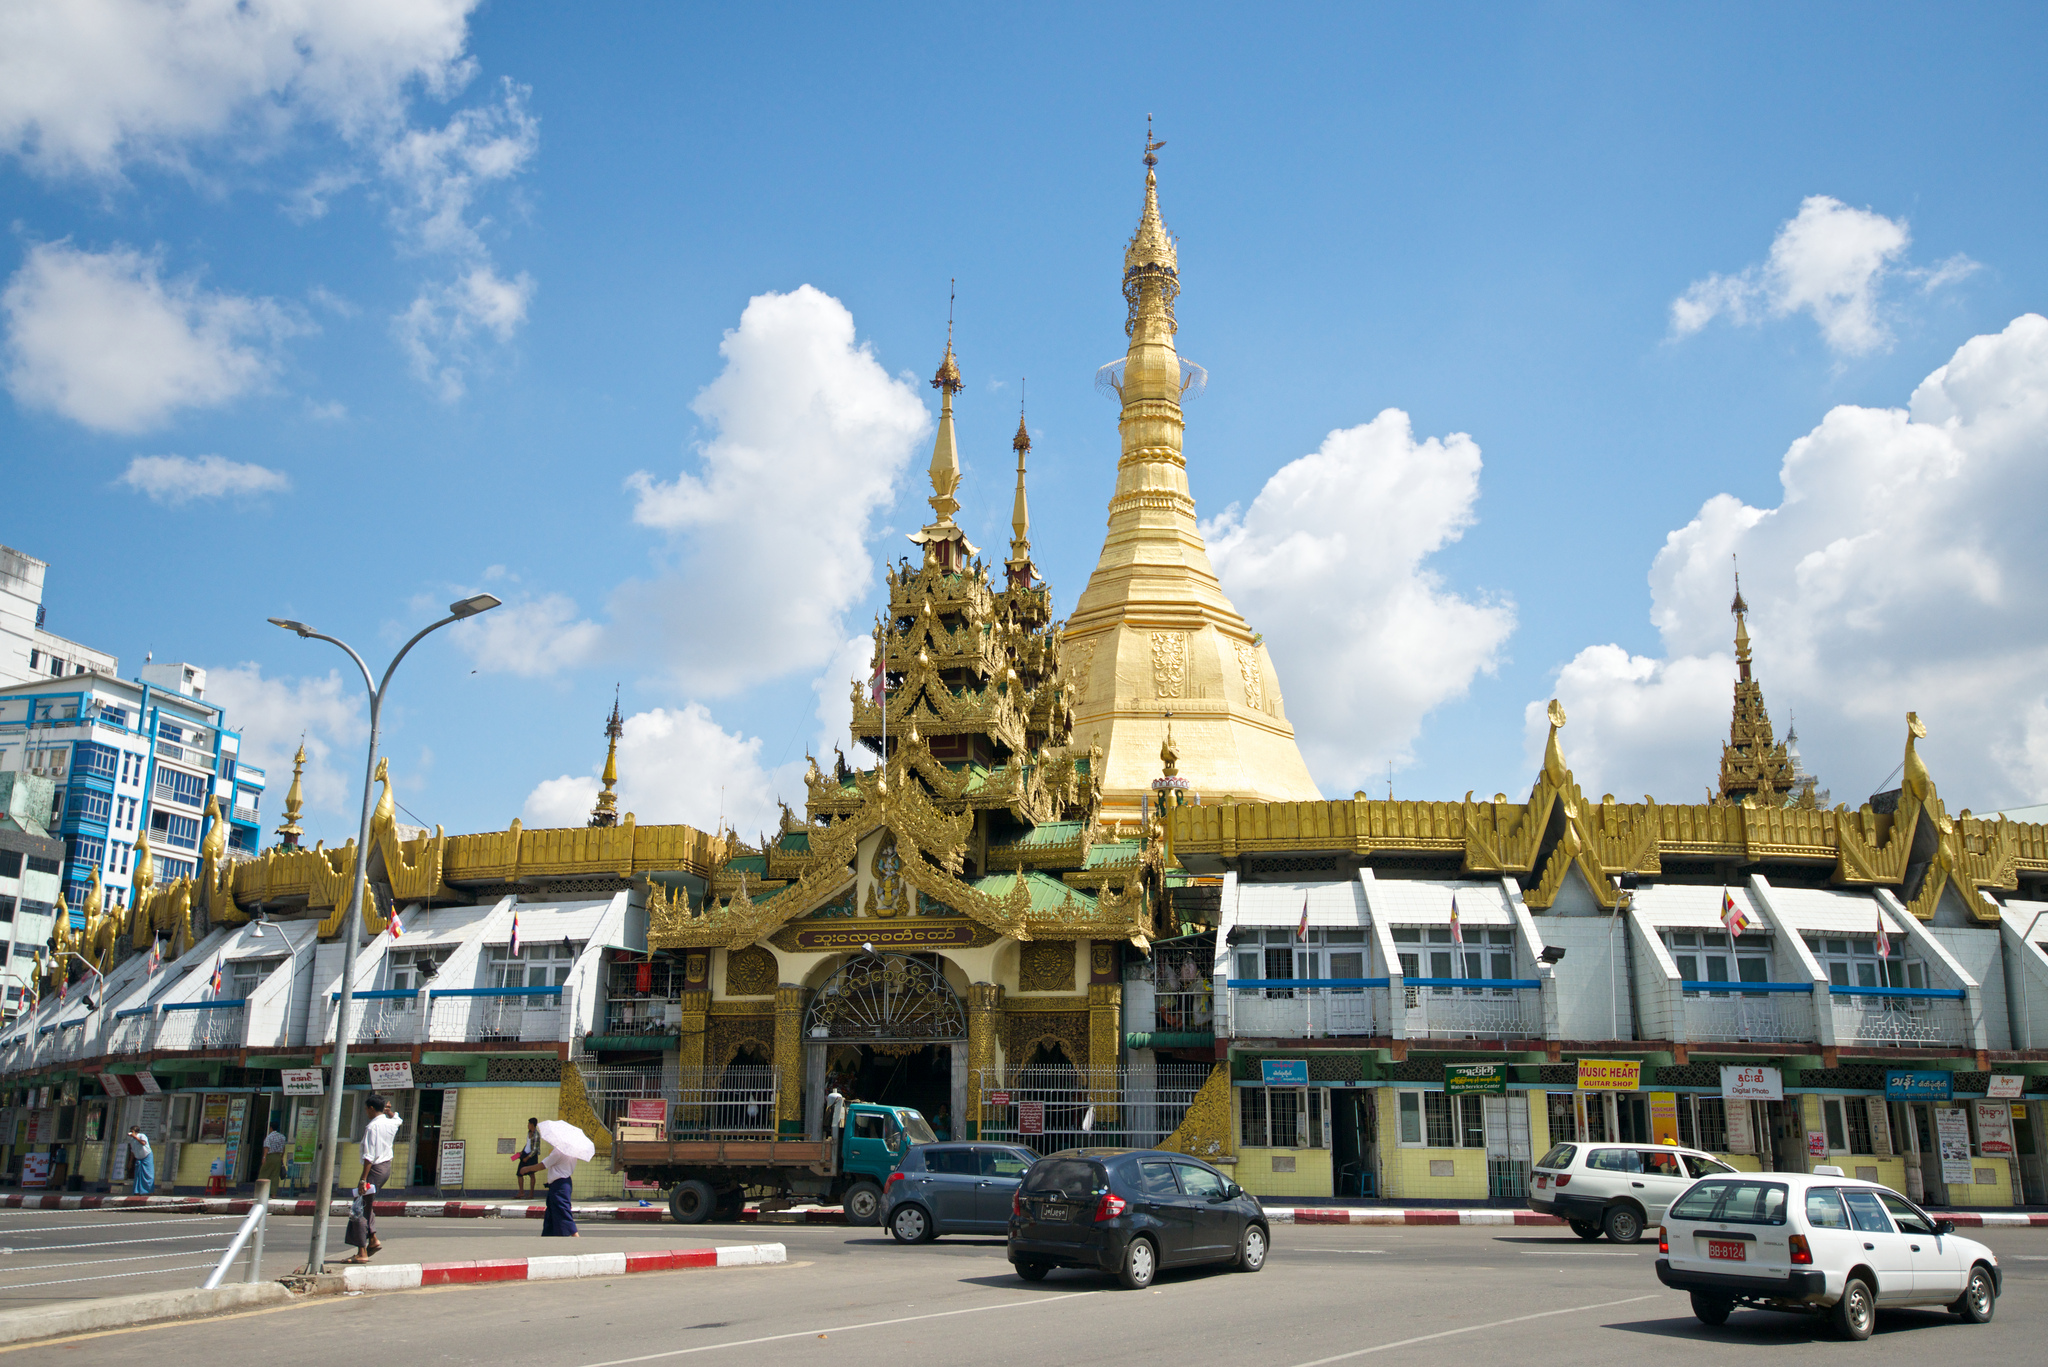 Sule Pagoda Temple in Yangon